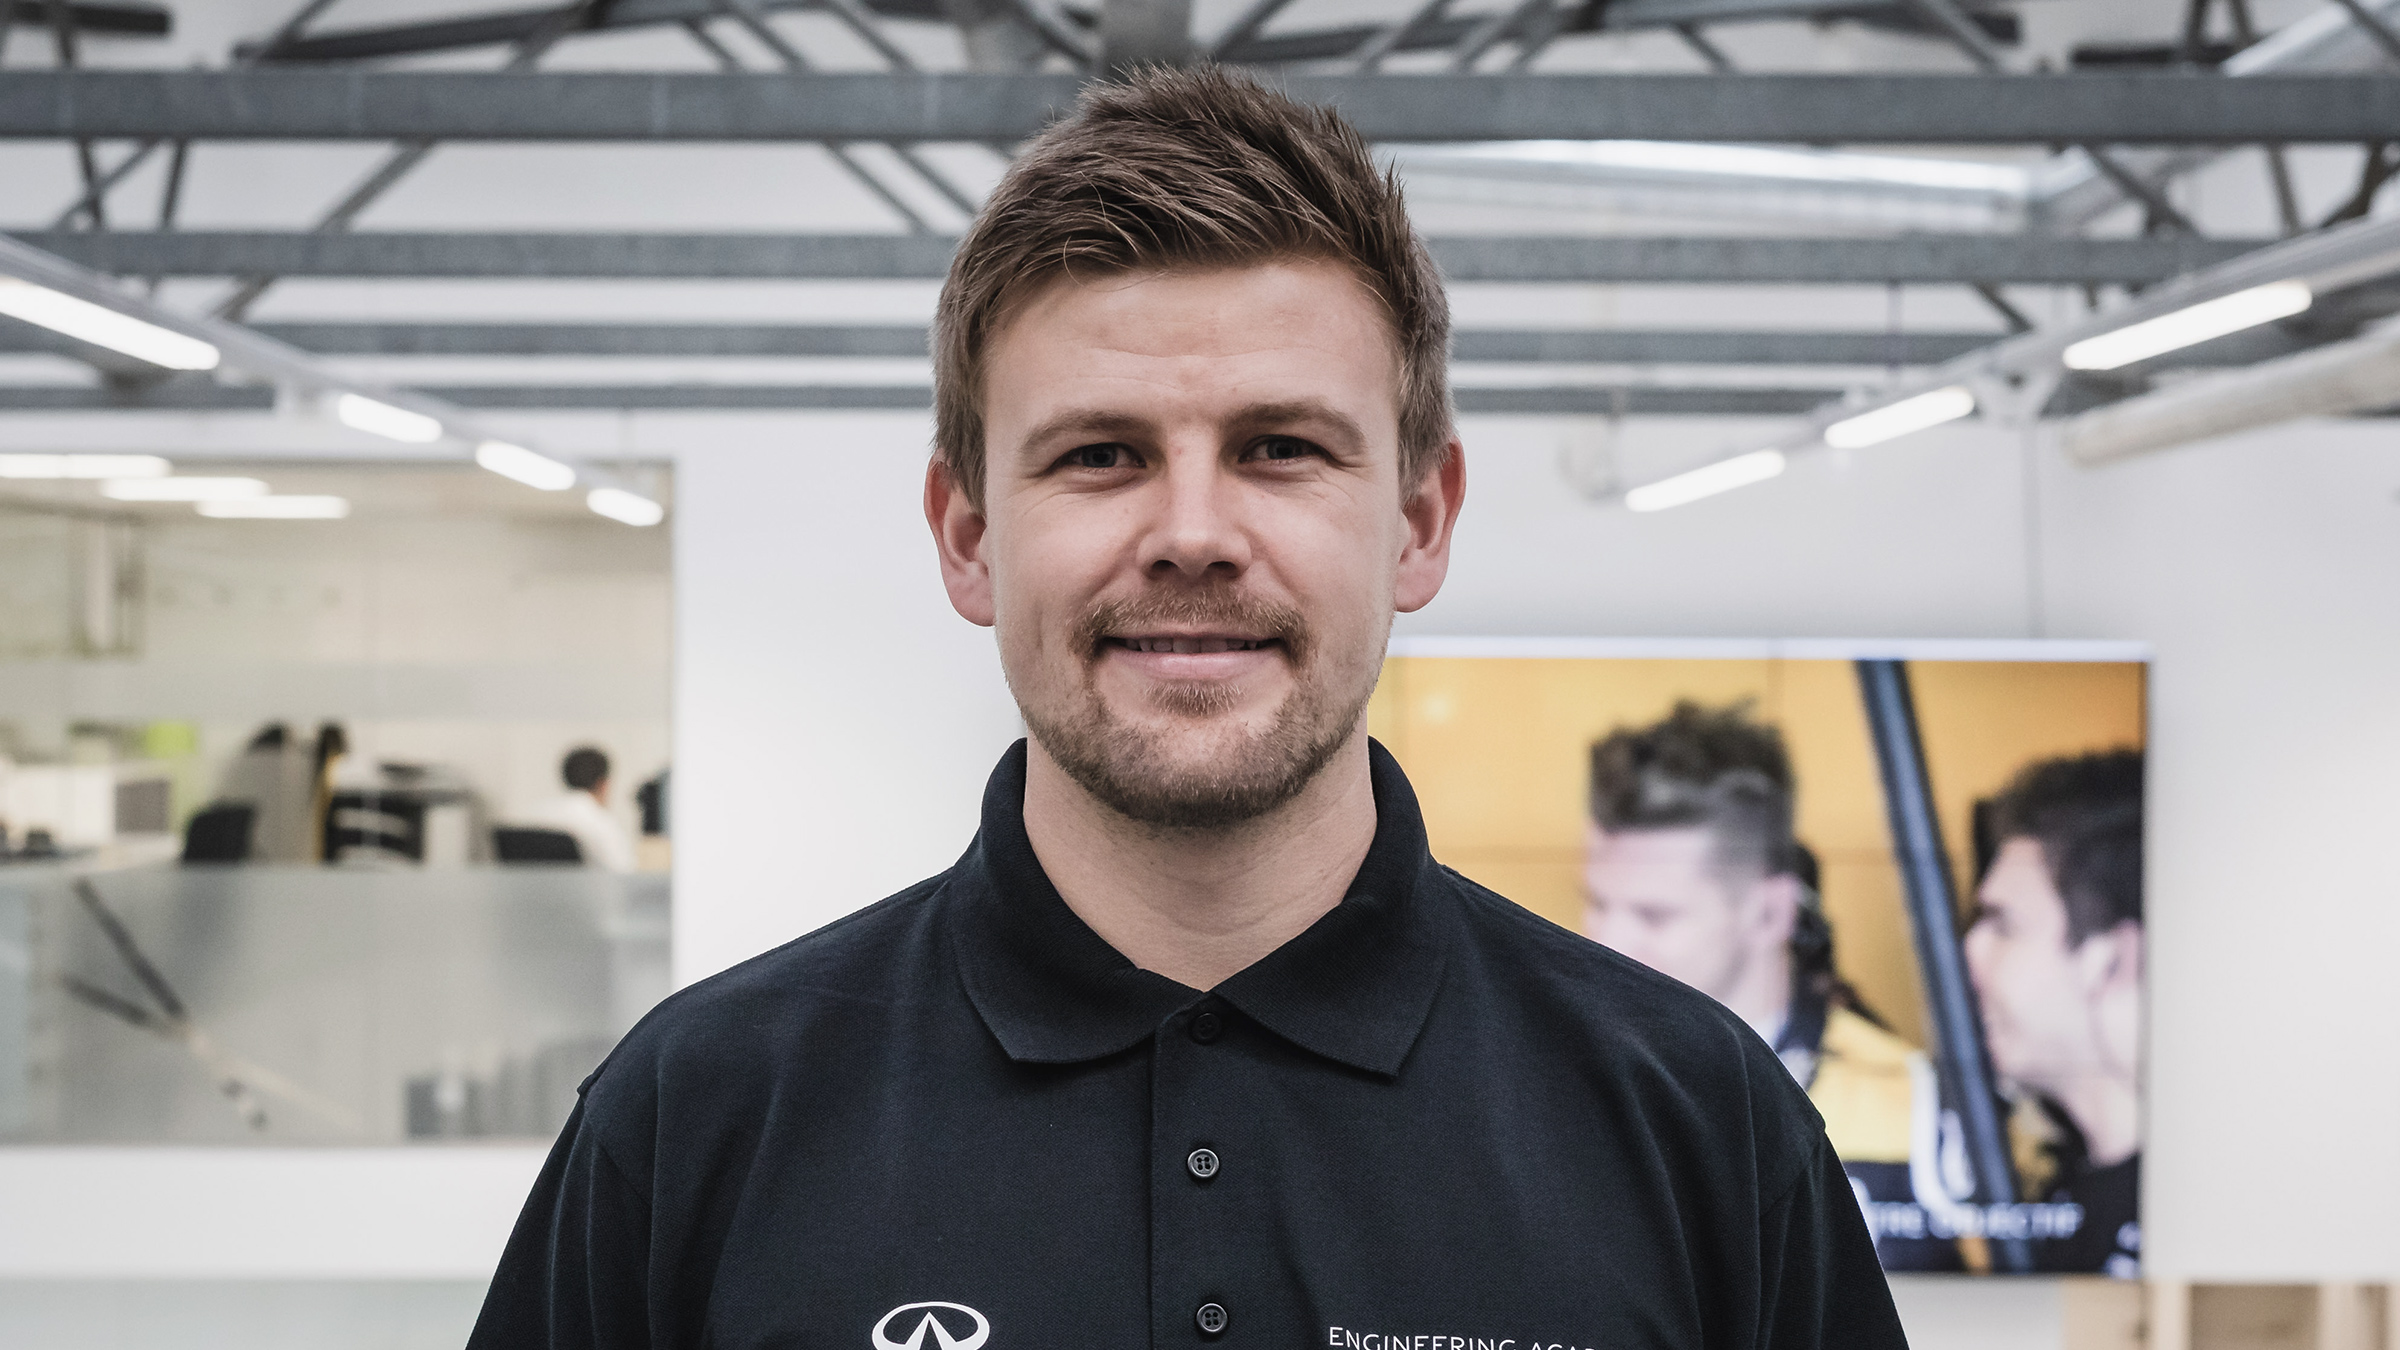 INFINITI Engineering Academy 2019 Engineer Benedikt Helling Profile